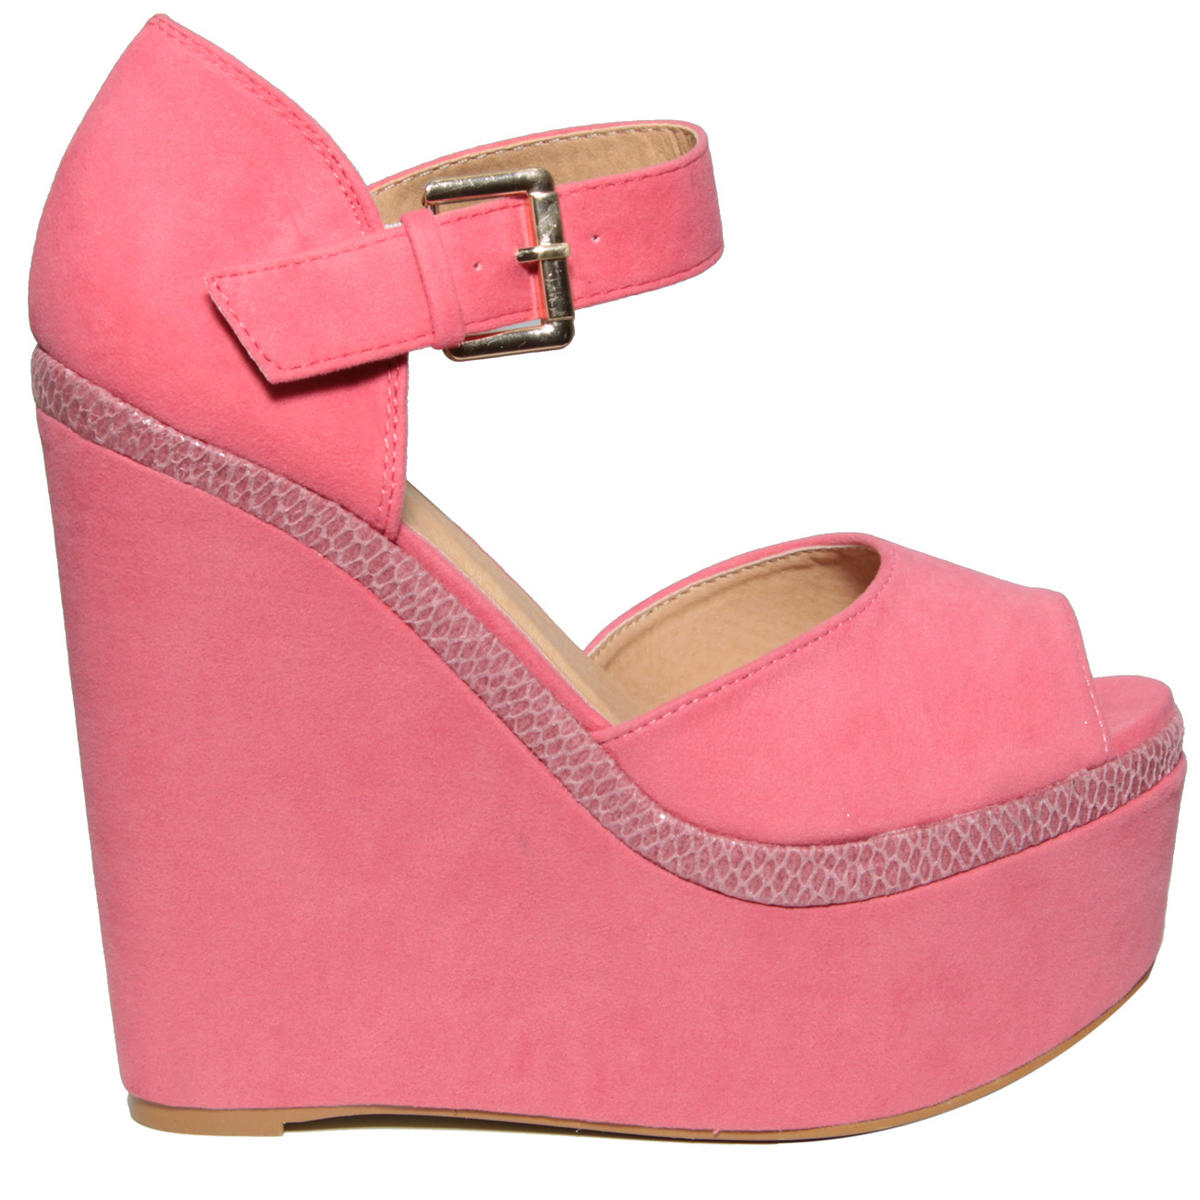 Pink Snakeskin Buckle Wedge Shoe Preview